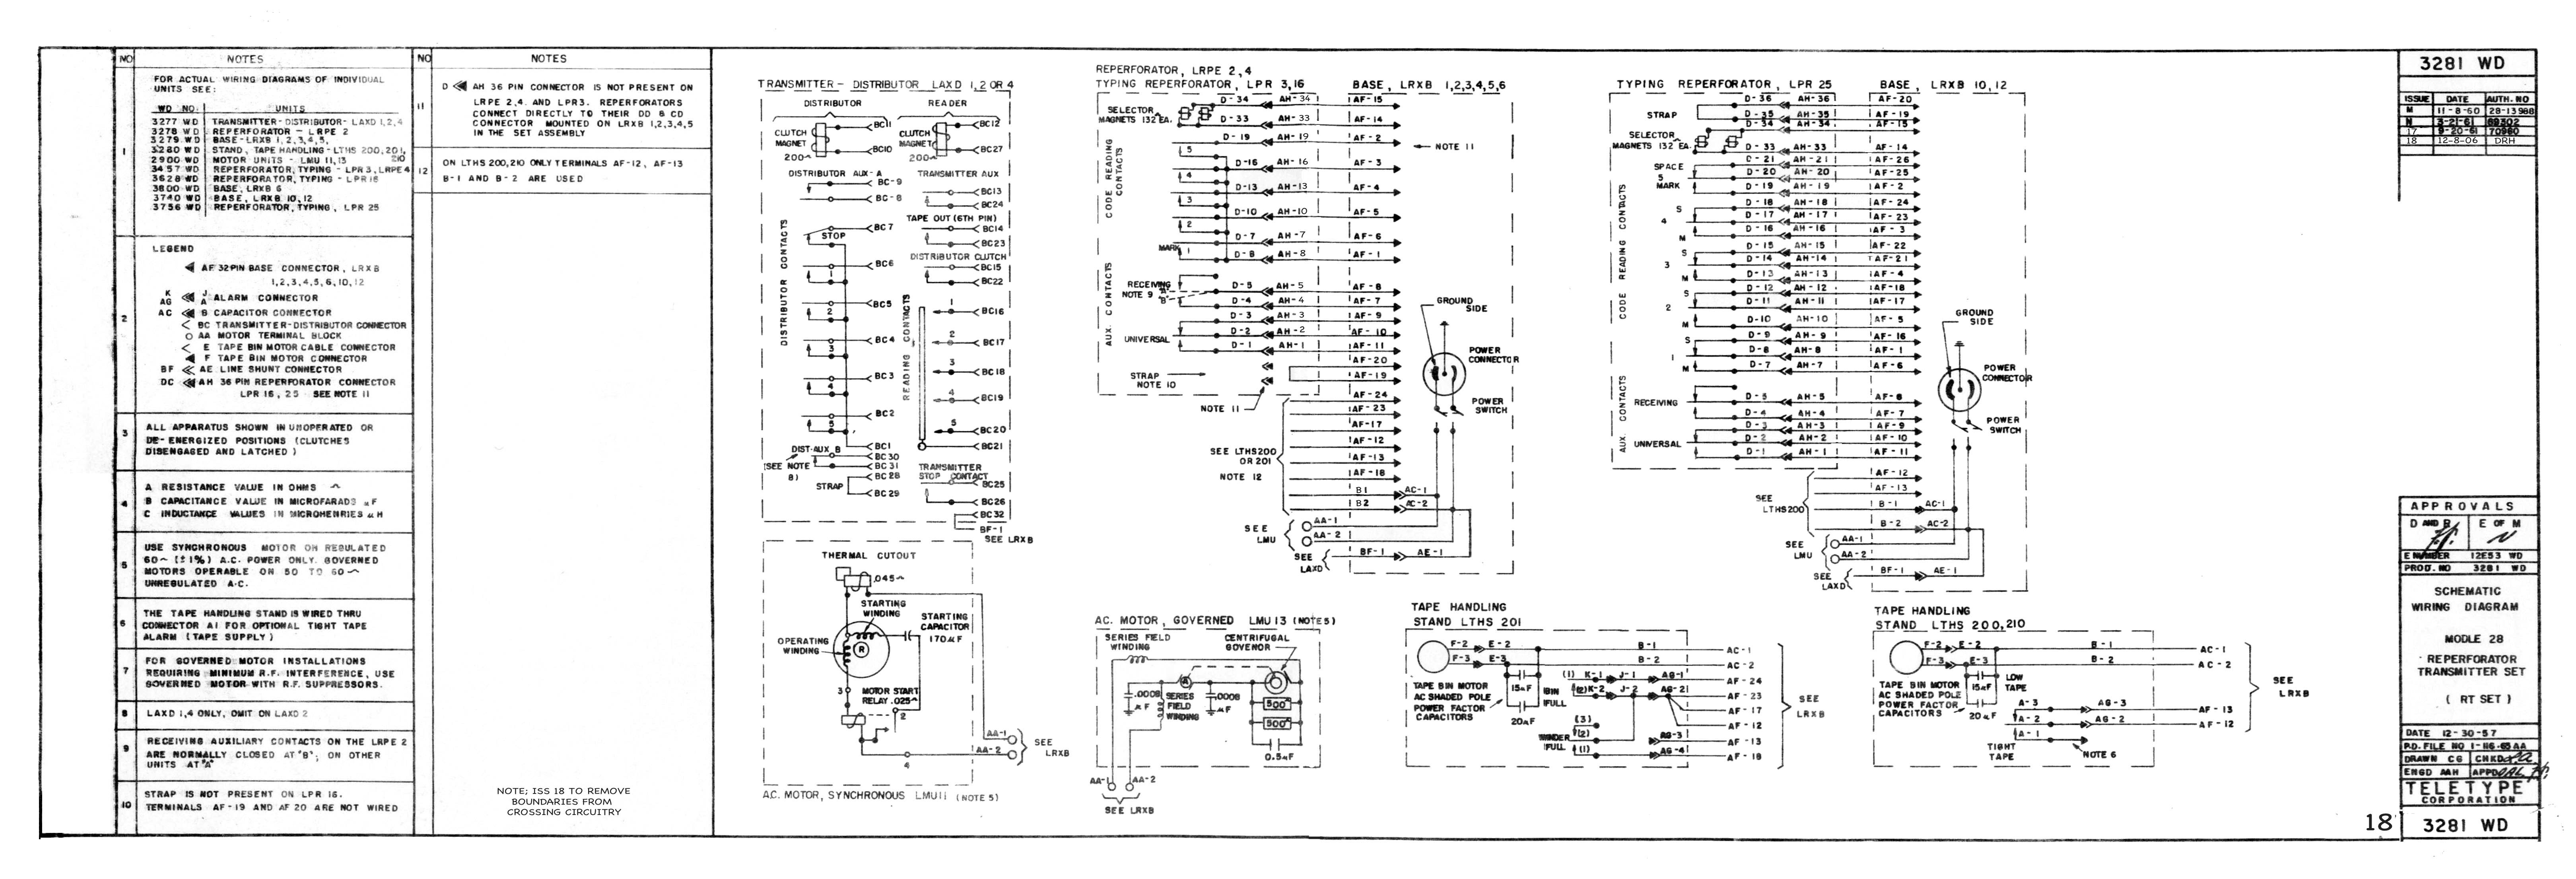 Teletype Wiring Diagrams and Schematics – Link Controls Wiring Diagram